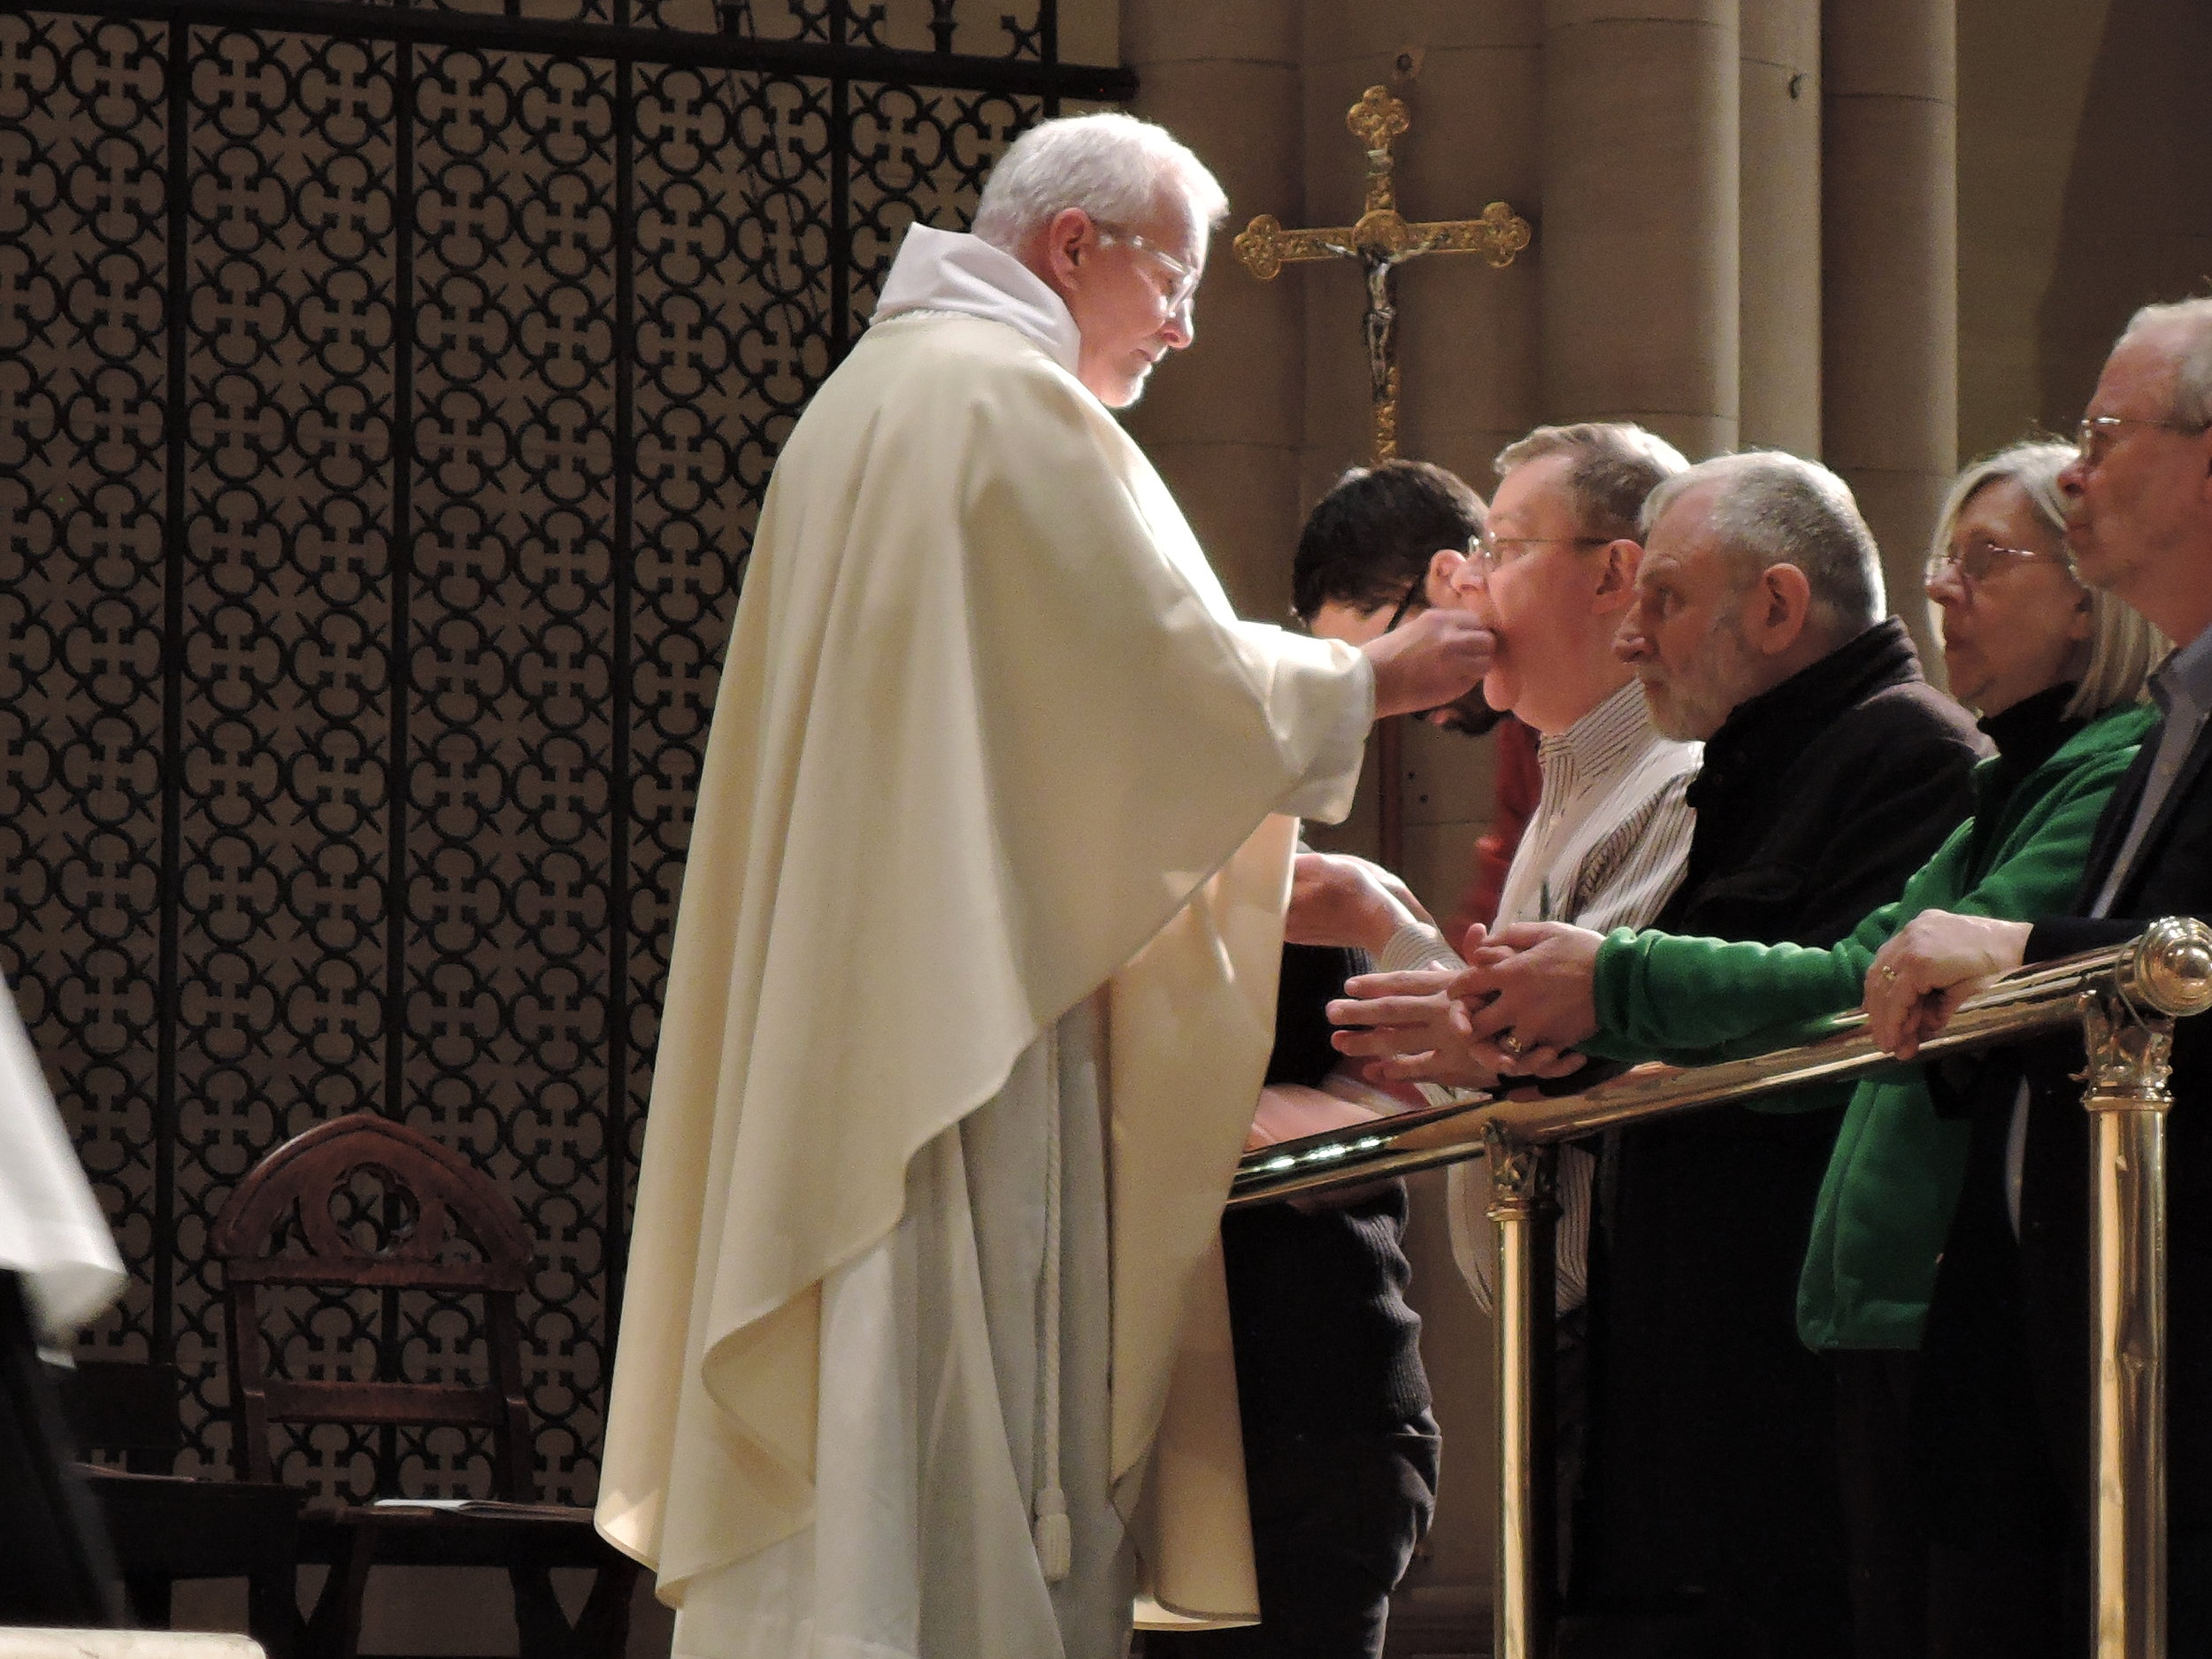 Father Pace was a concelebrant.